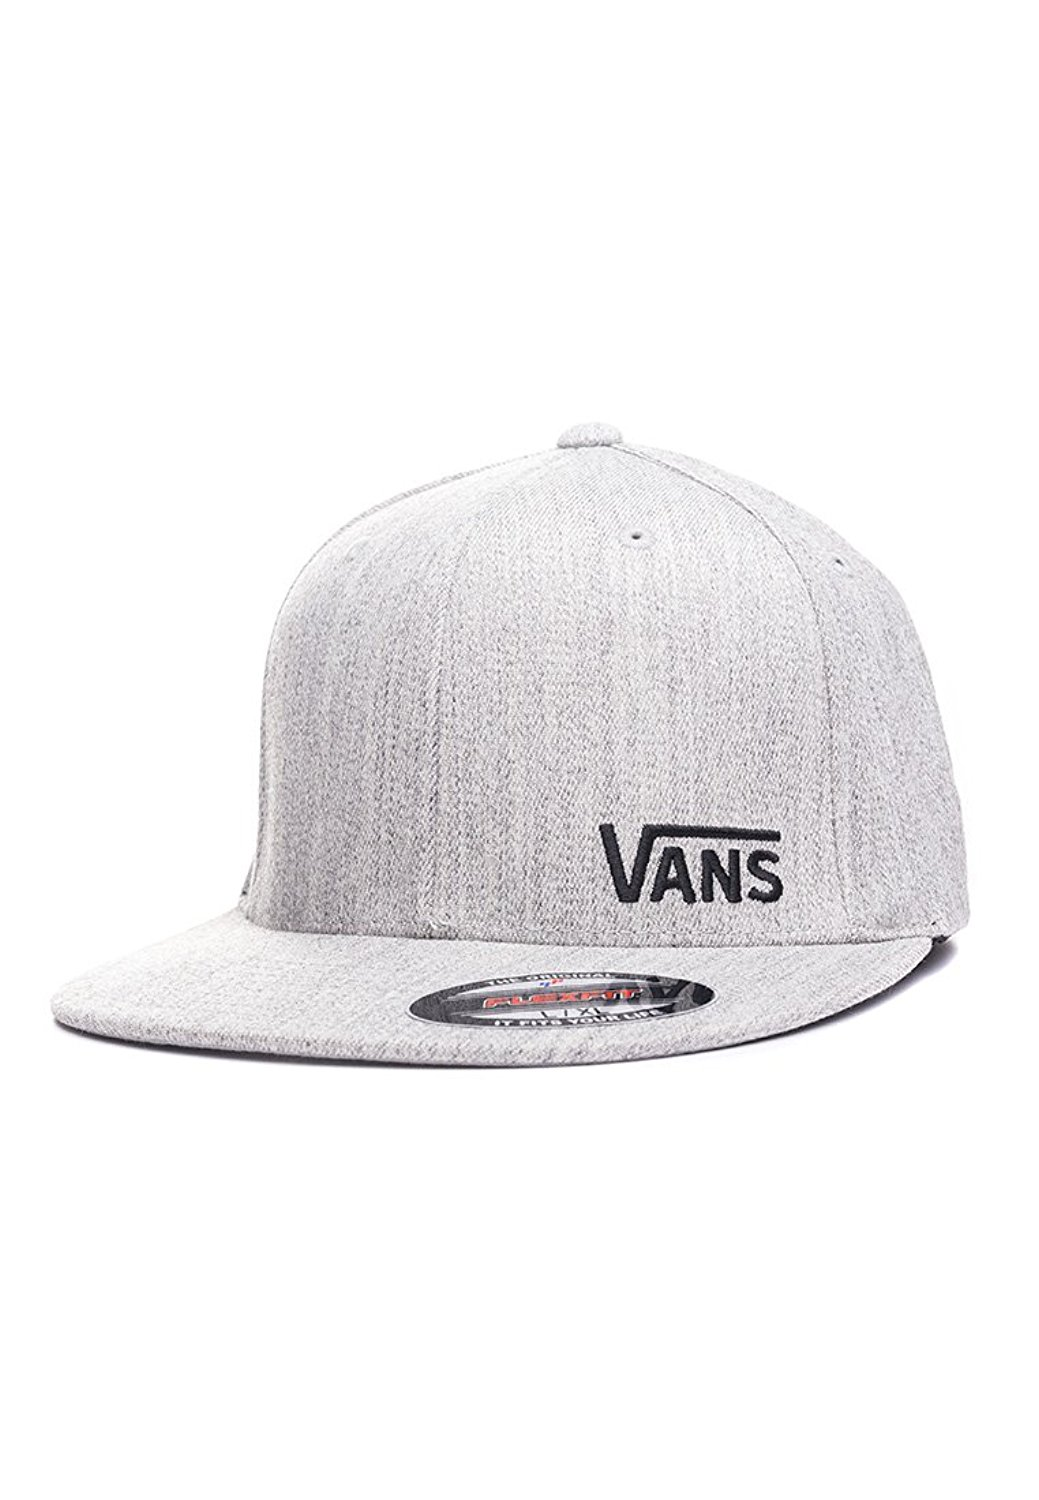 5a1c3448f23 Get Quotations · Vans Heather Grey Splitz Flat Peak Flexfit Cap (S M